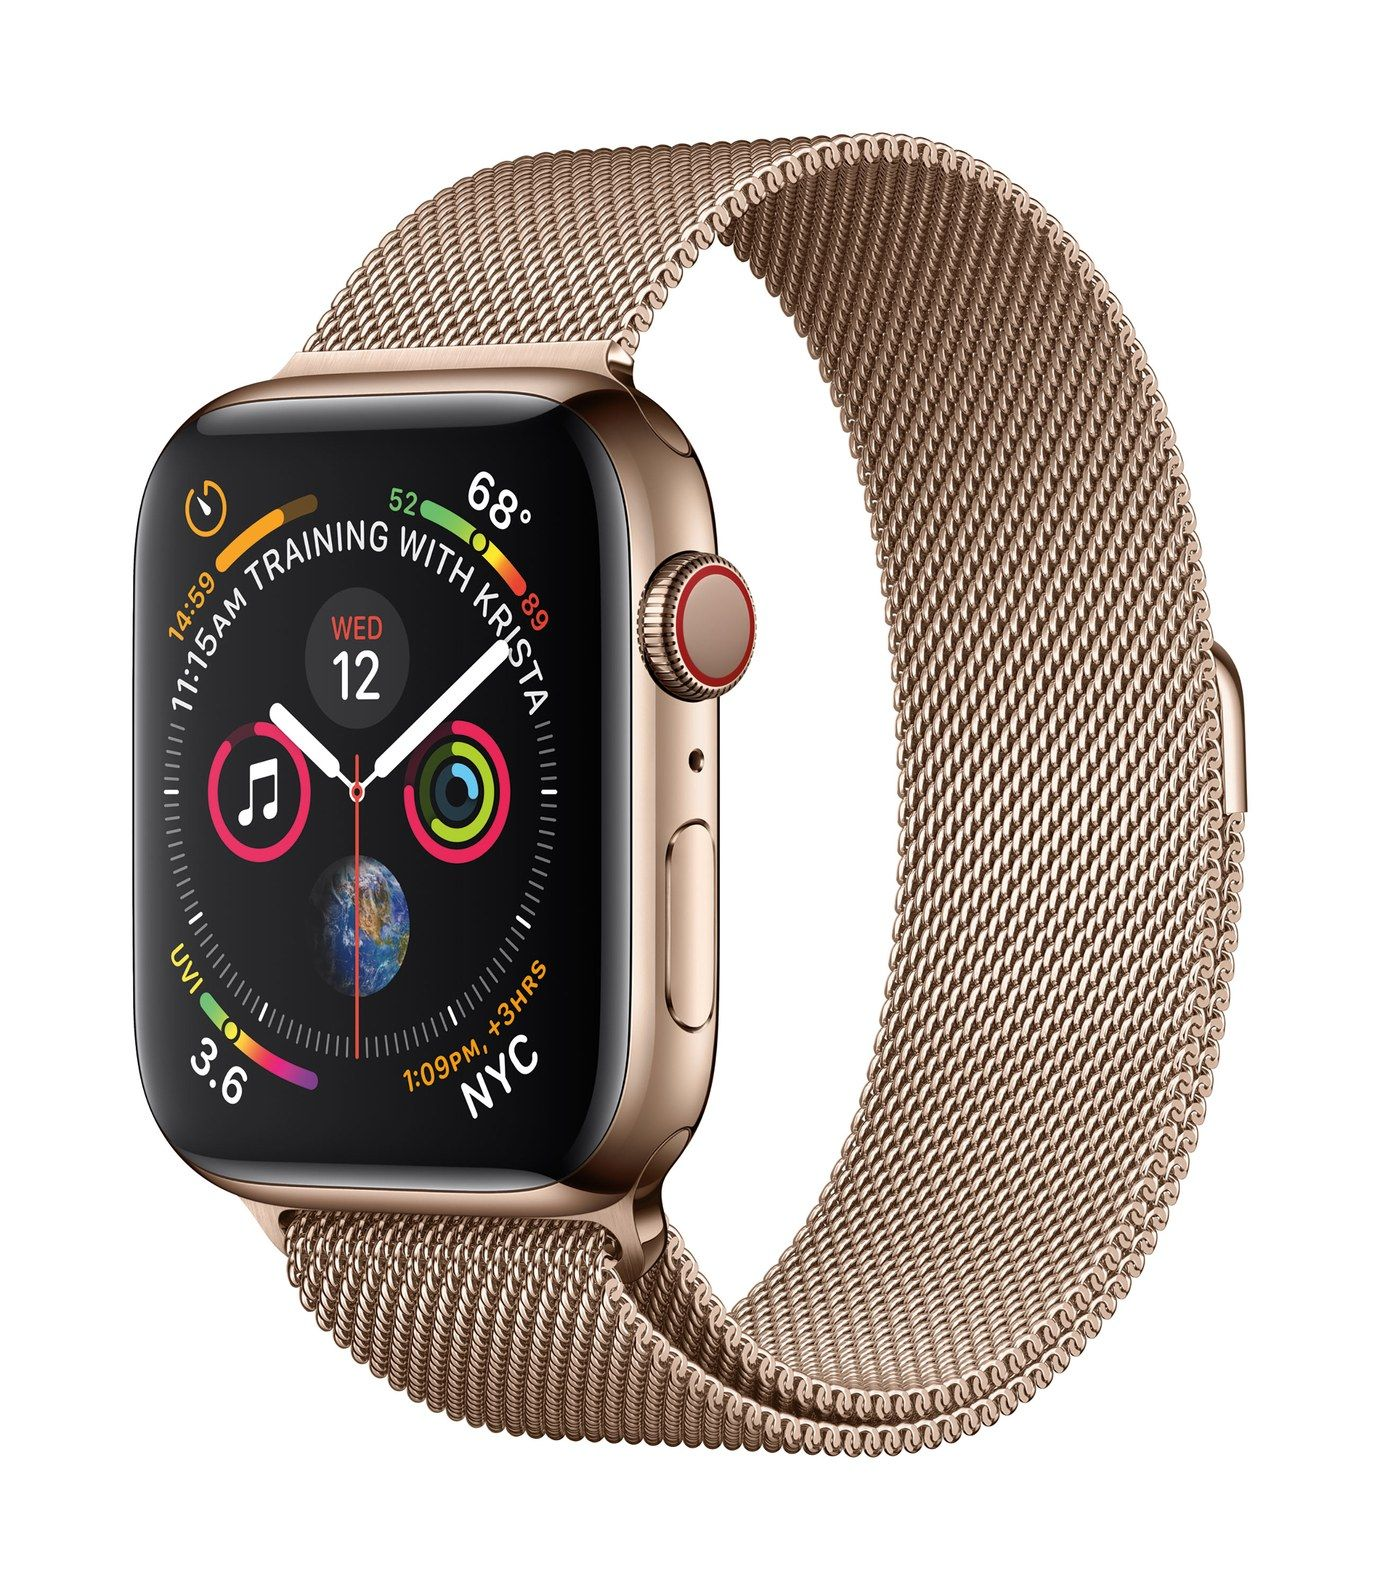 5 New Things The Apple Watch Series 4 Can Do Reloj Apple Apple Watch Correas Apple Watch